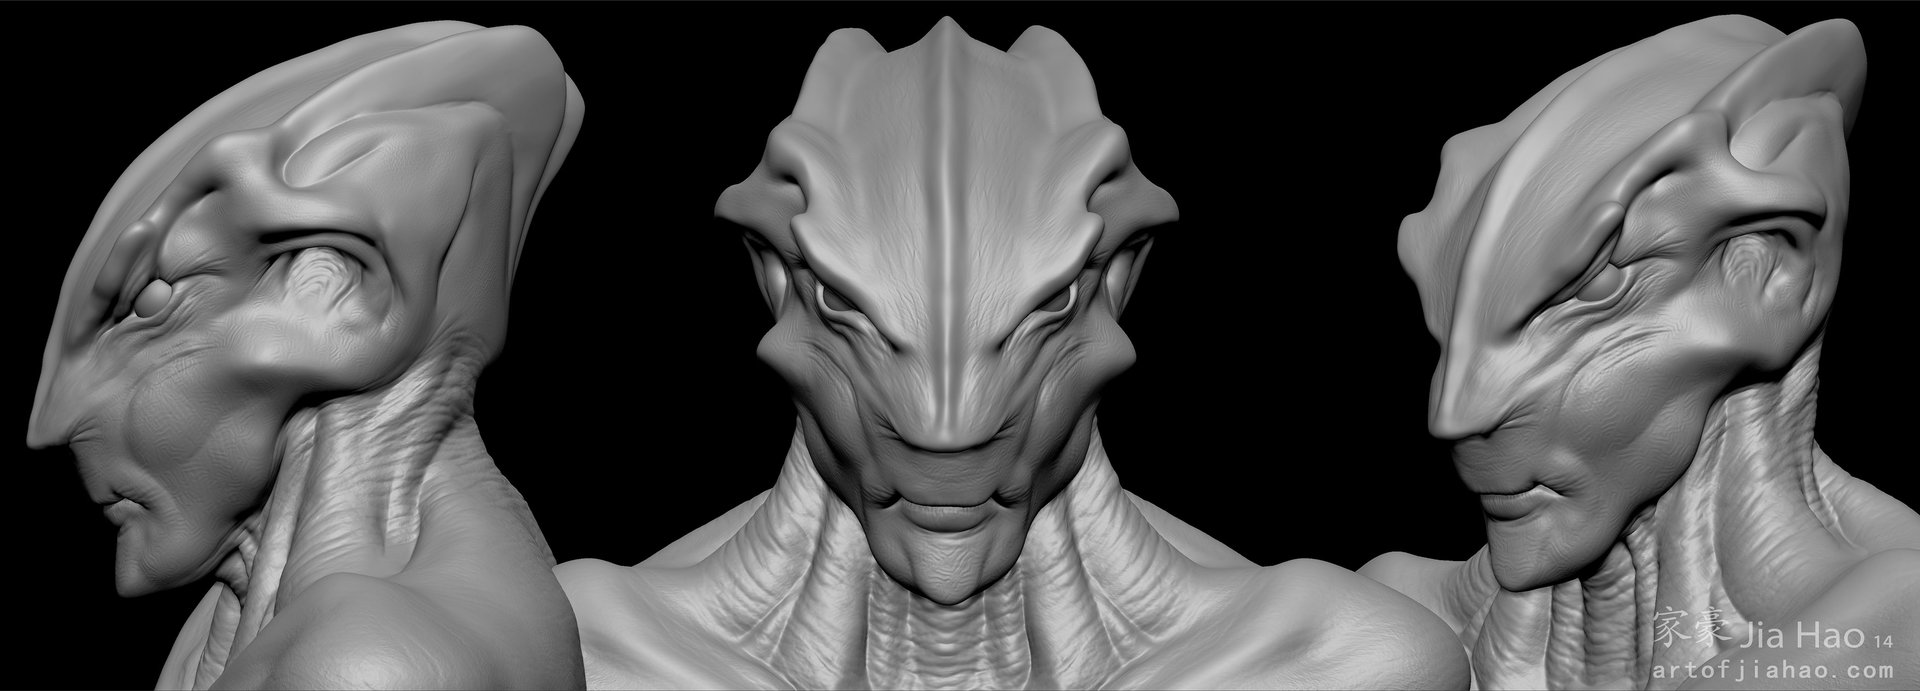 Jia hao 2014 01 alien bust 2 views sculpt